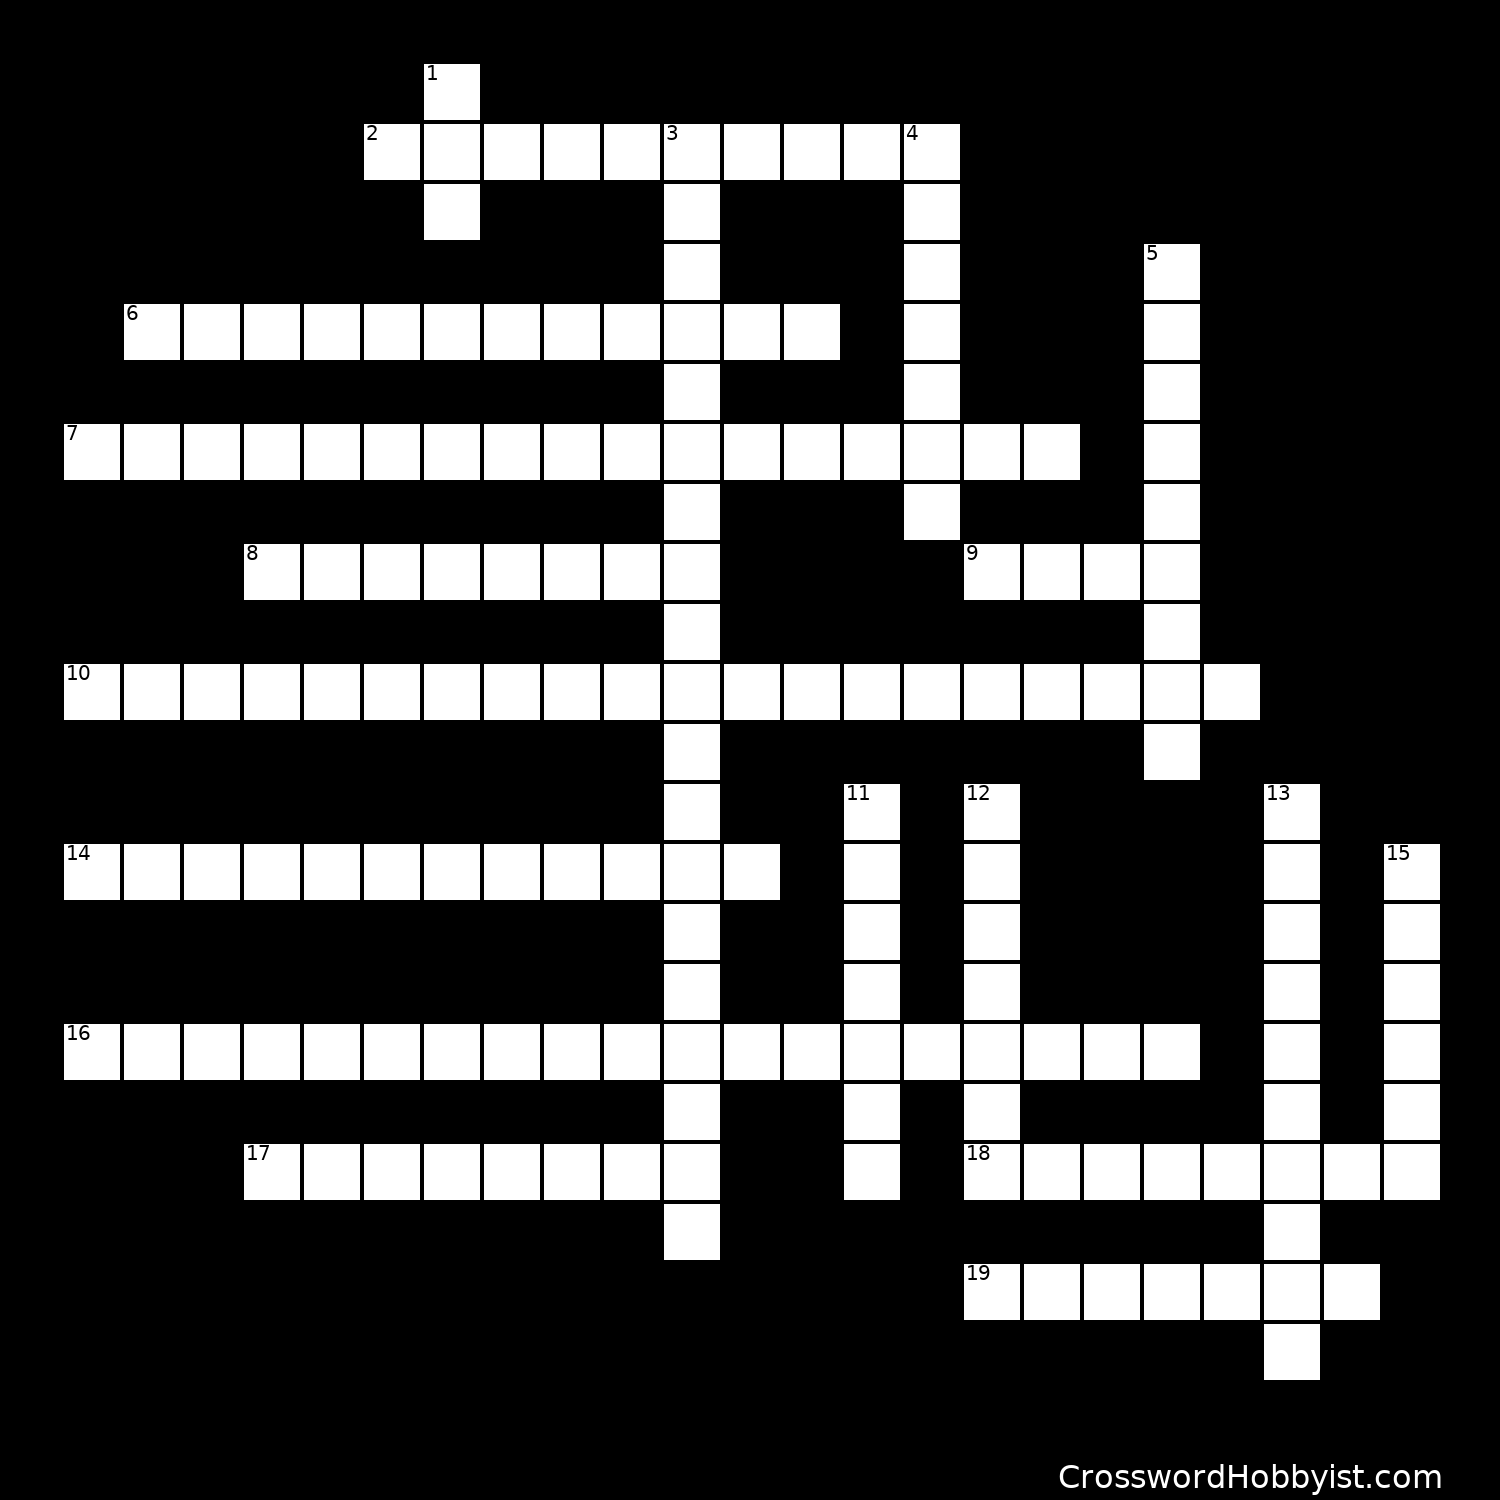 Order Of Operations Crossword